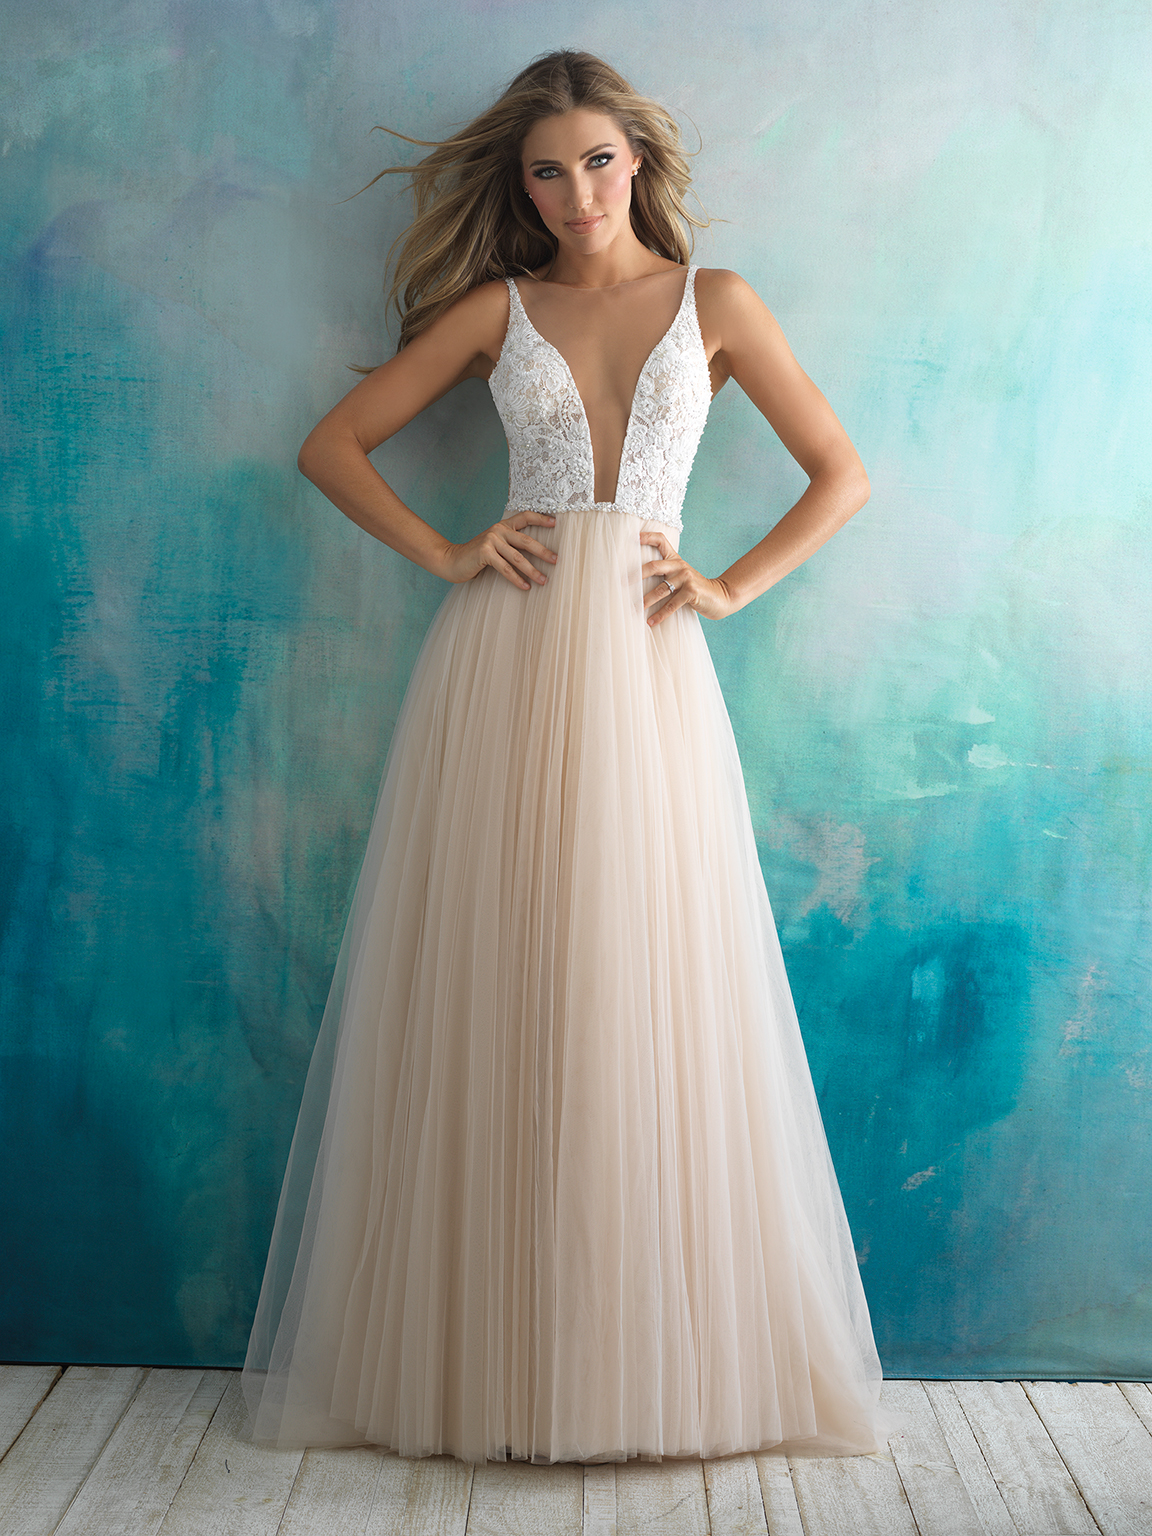 Plunging V-neck Lace And Tulle Ballgown Wedding Dress | Kleinfeld Bridal